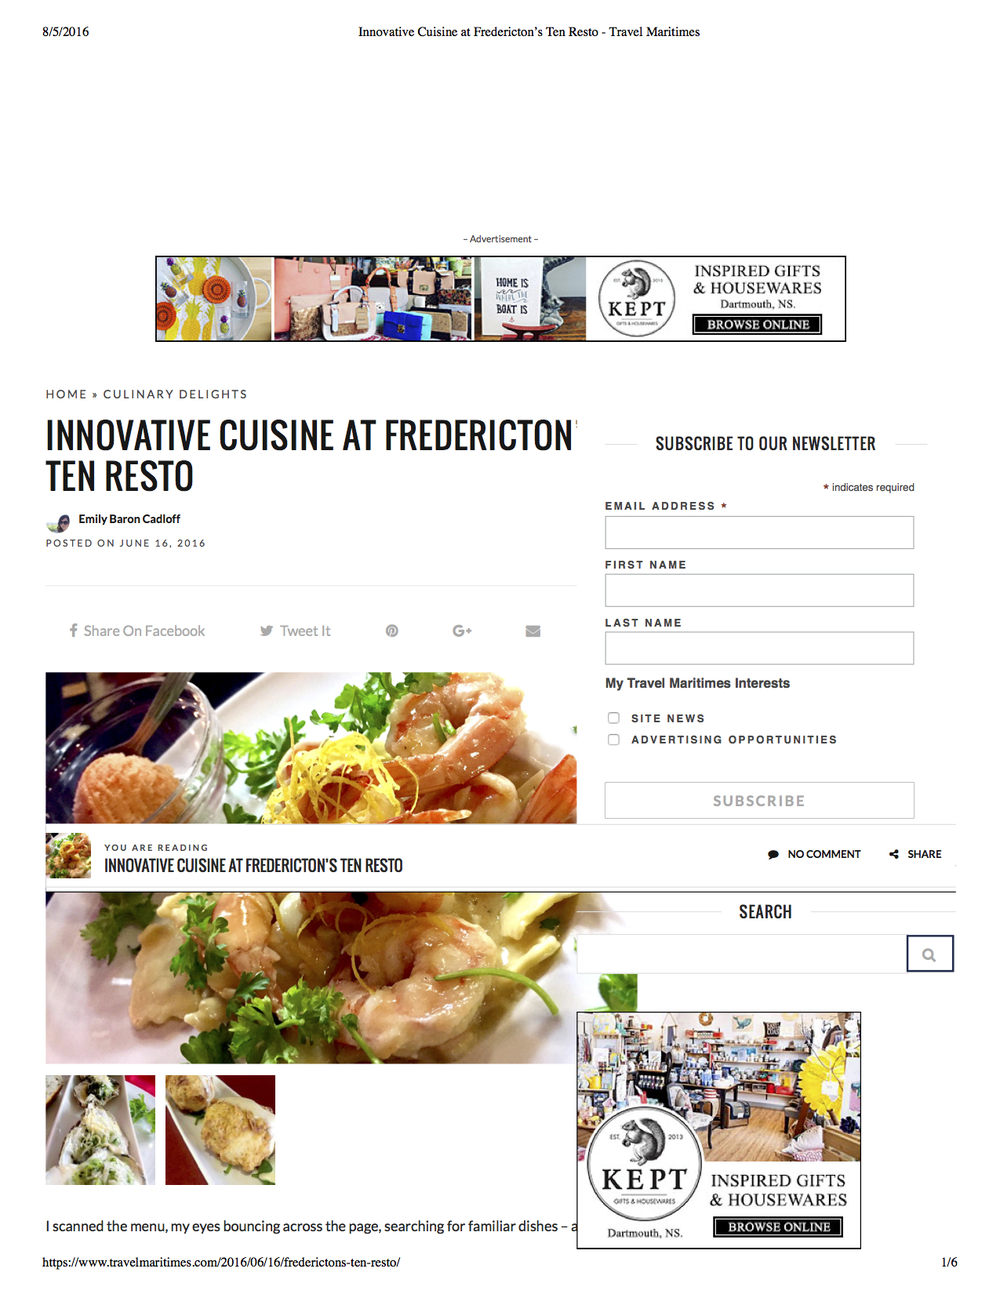 Travel feature and review: Ten Resto. Travel Maritimes, June 2016